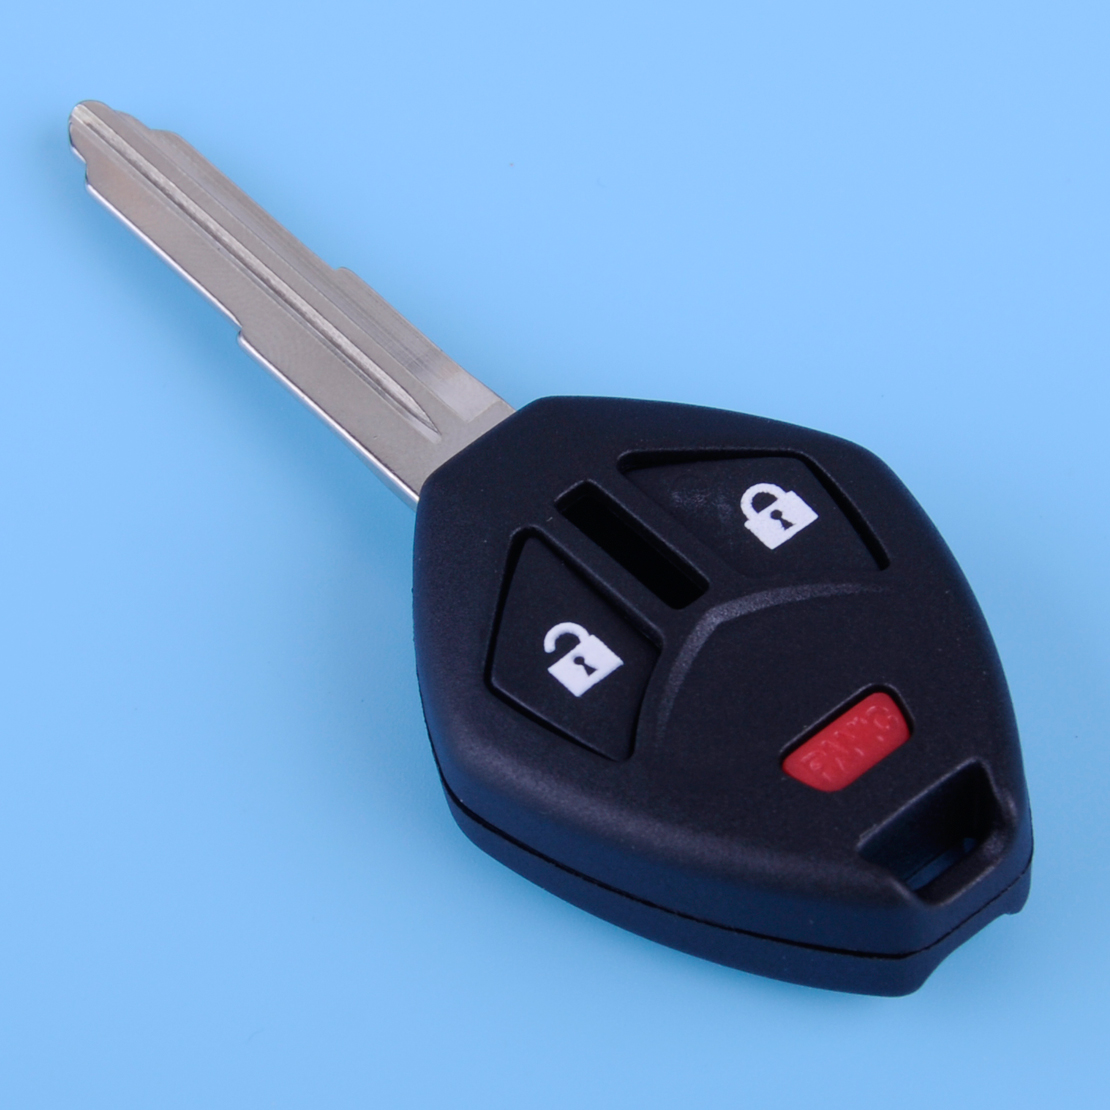 DWCX New Car 3 Buttons Uncut Remote Key Fob Case Shell With Blade Fit For Mitsubishi Eclipse Galant Lancer